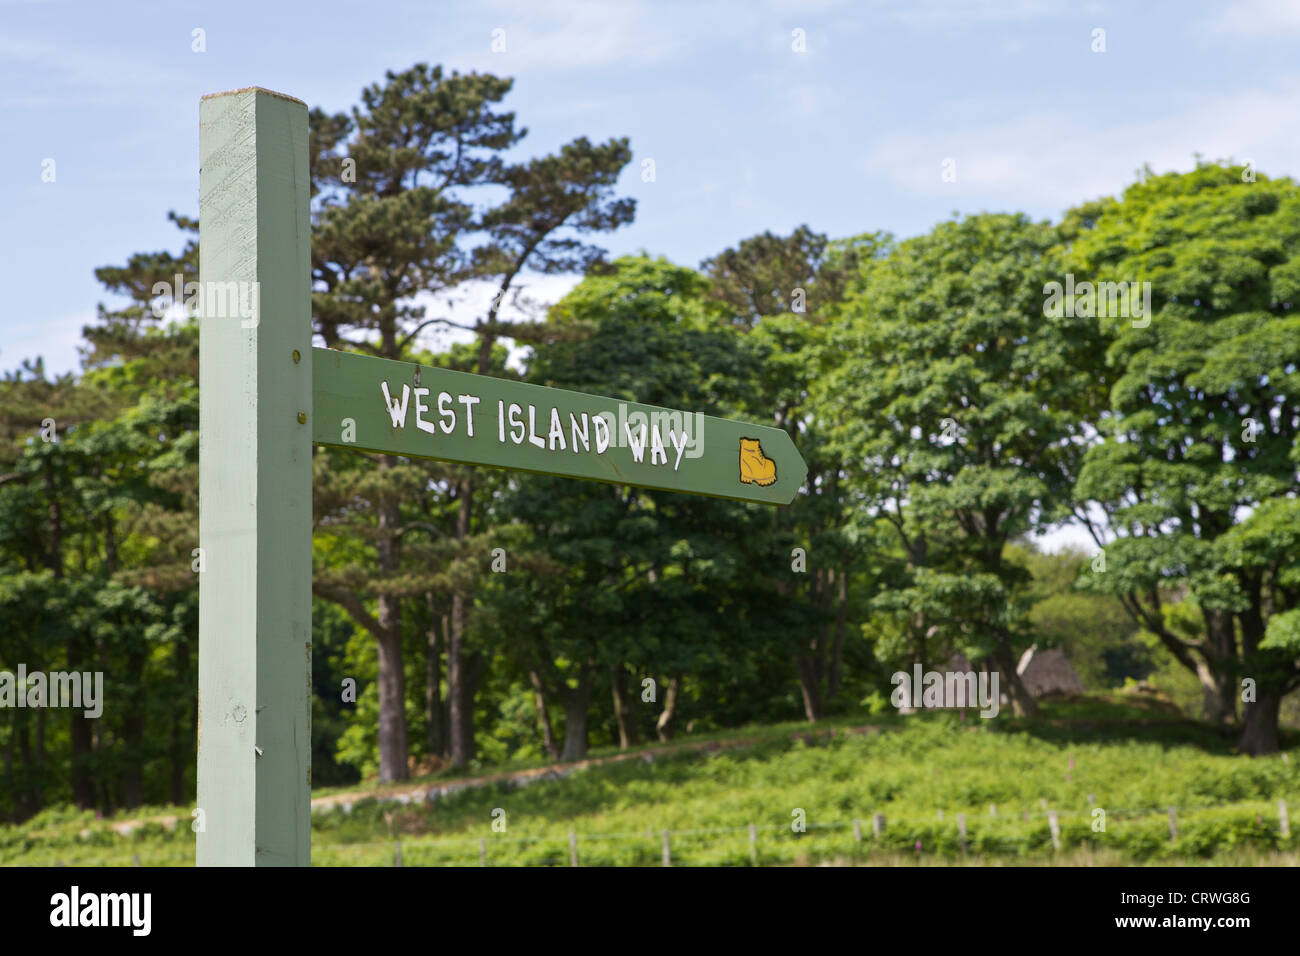 West Island way sign and St Blanes church visible in the trees - Stock Image